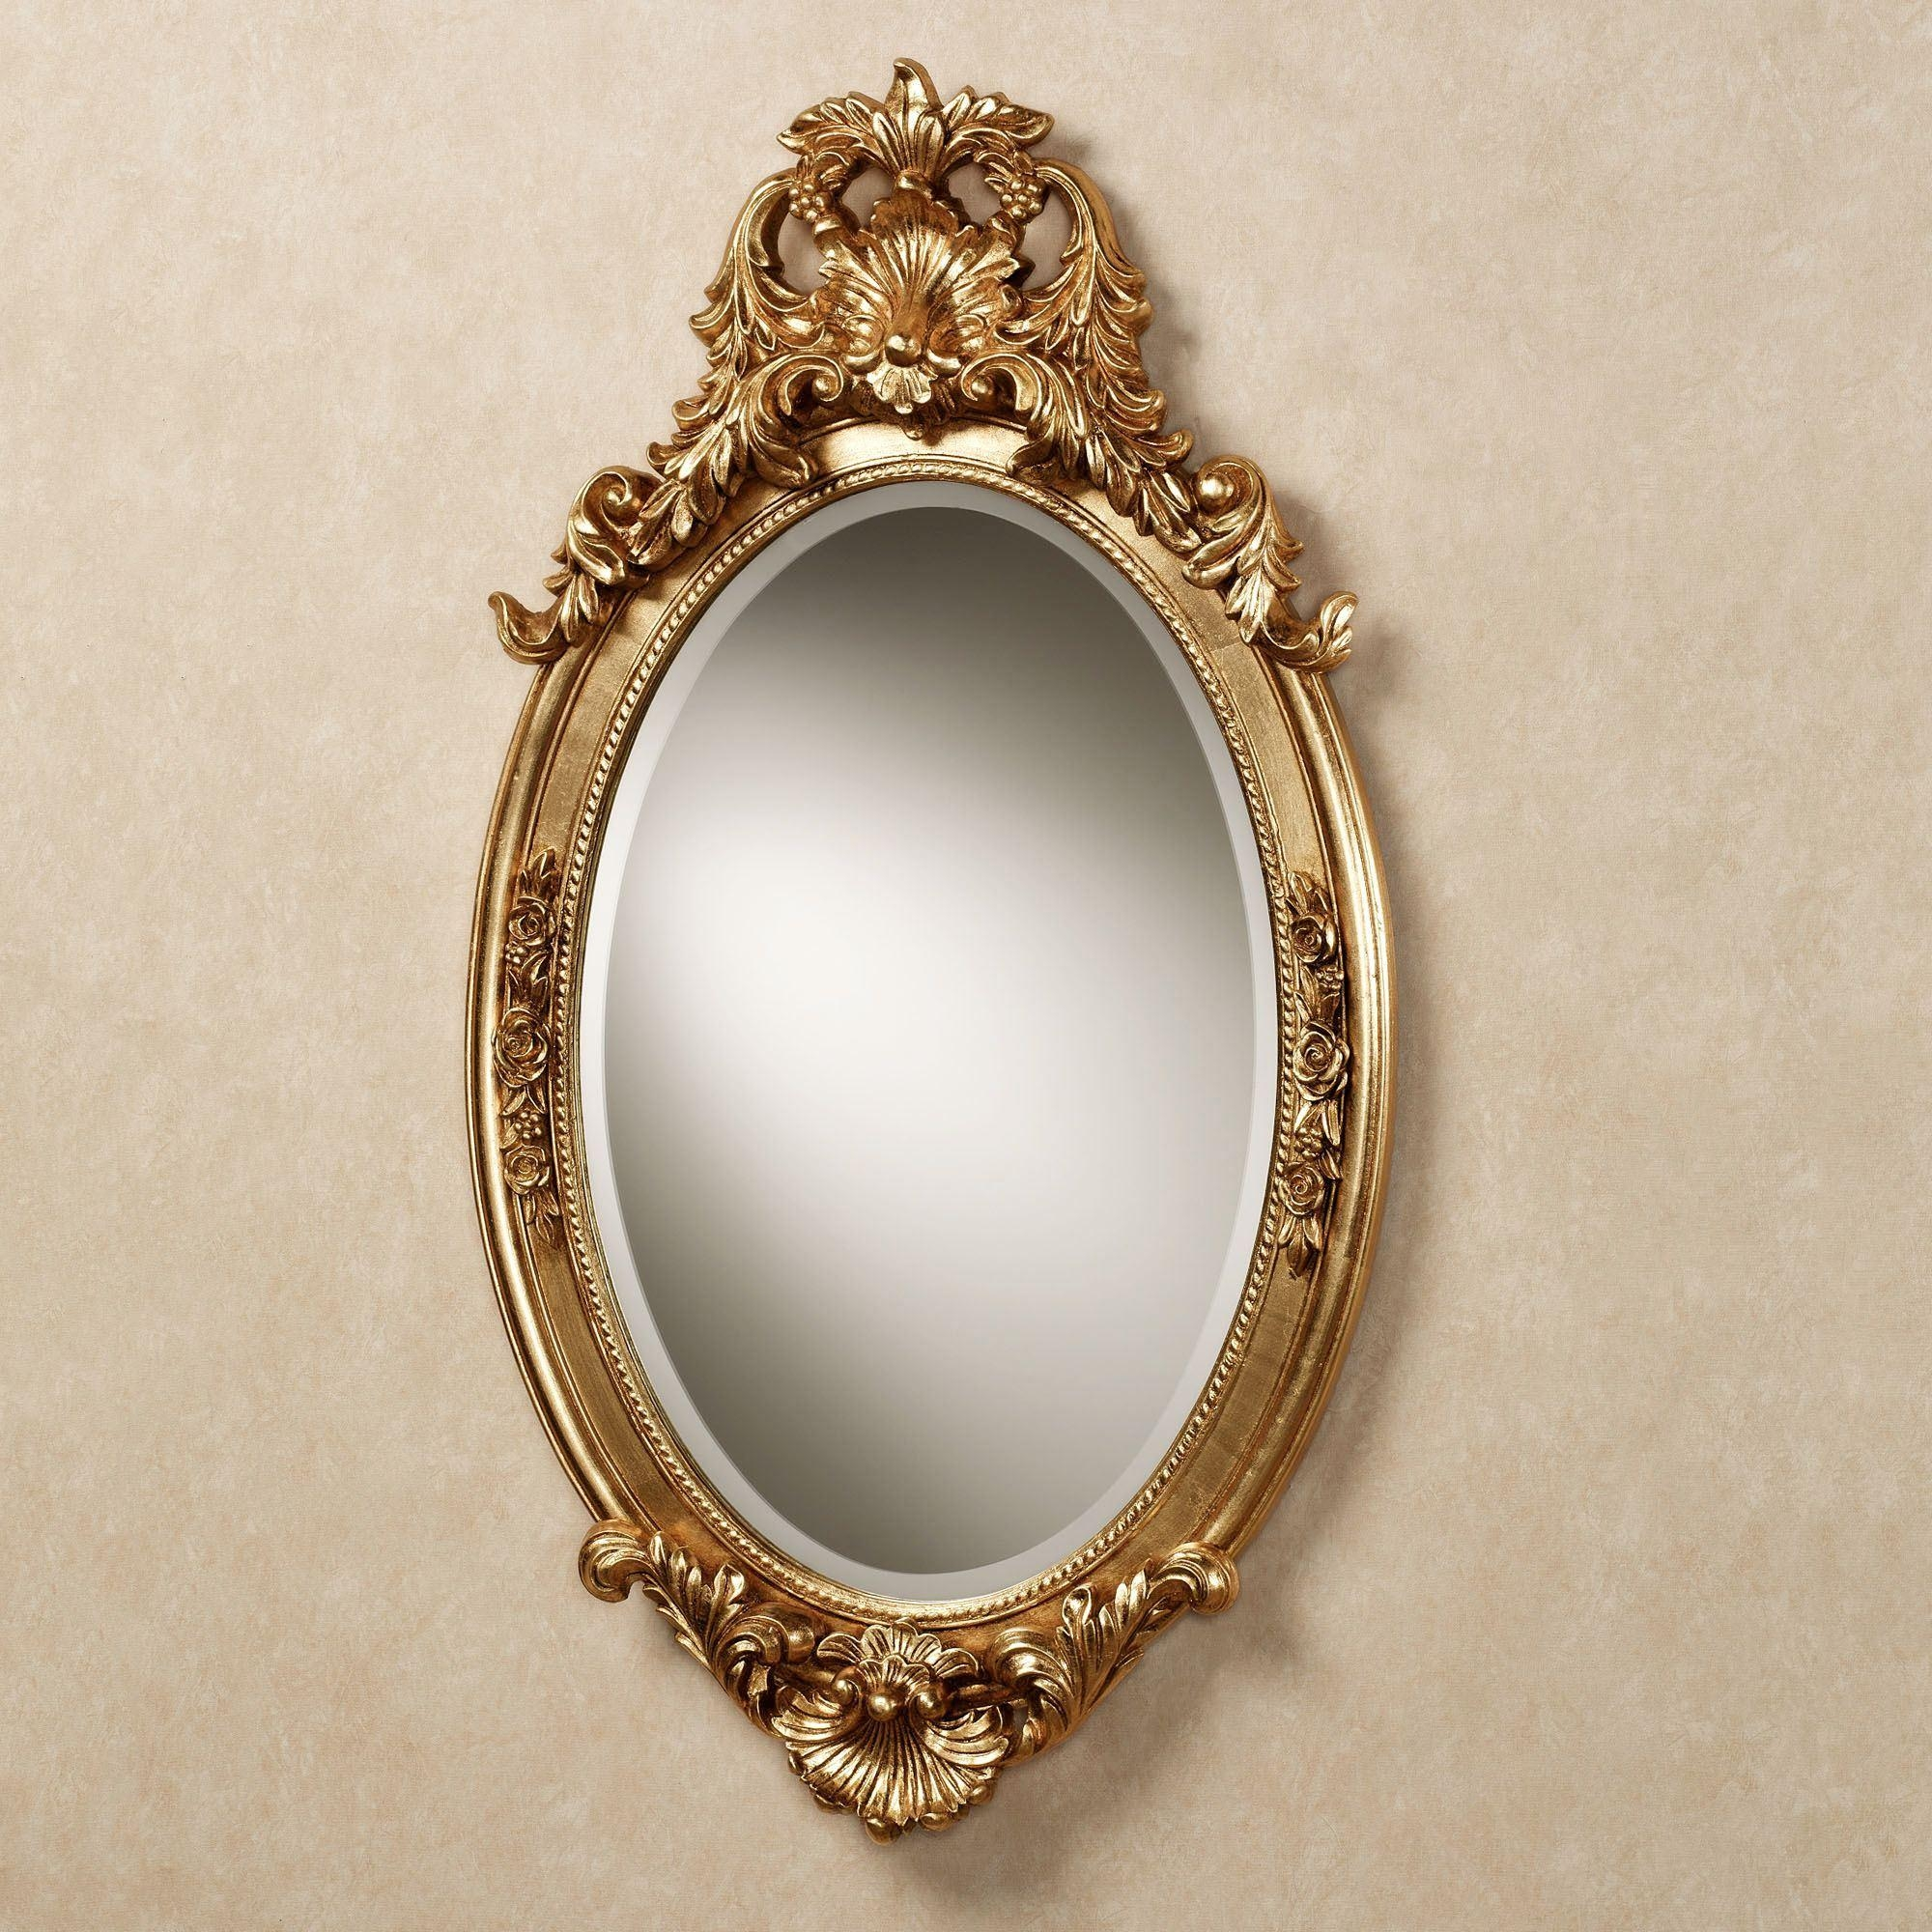 Hallandale Acanthus Leaf Oval Wall Mirror With Gold Oval Mirrors (Image 9 of 20)